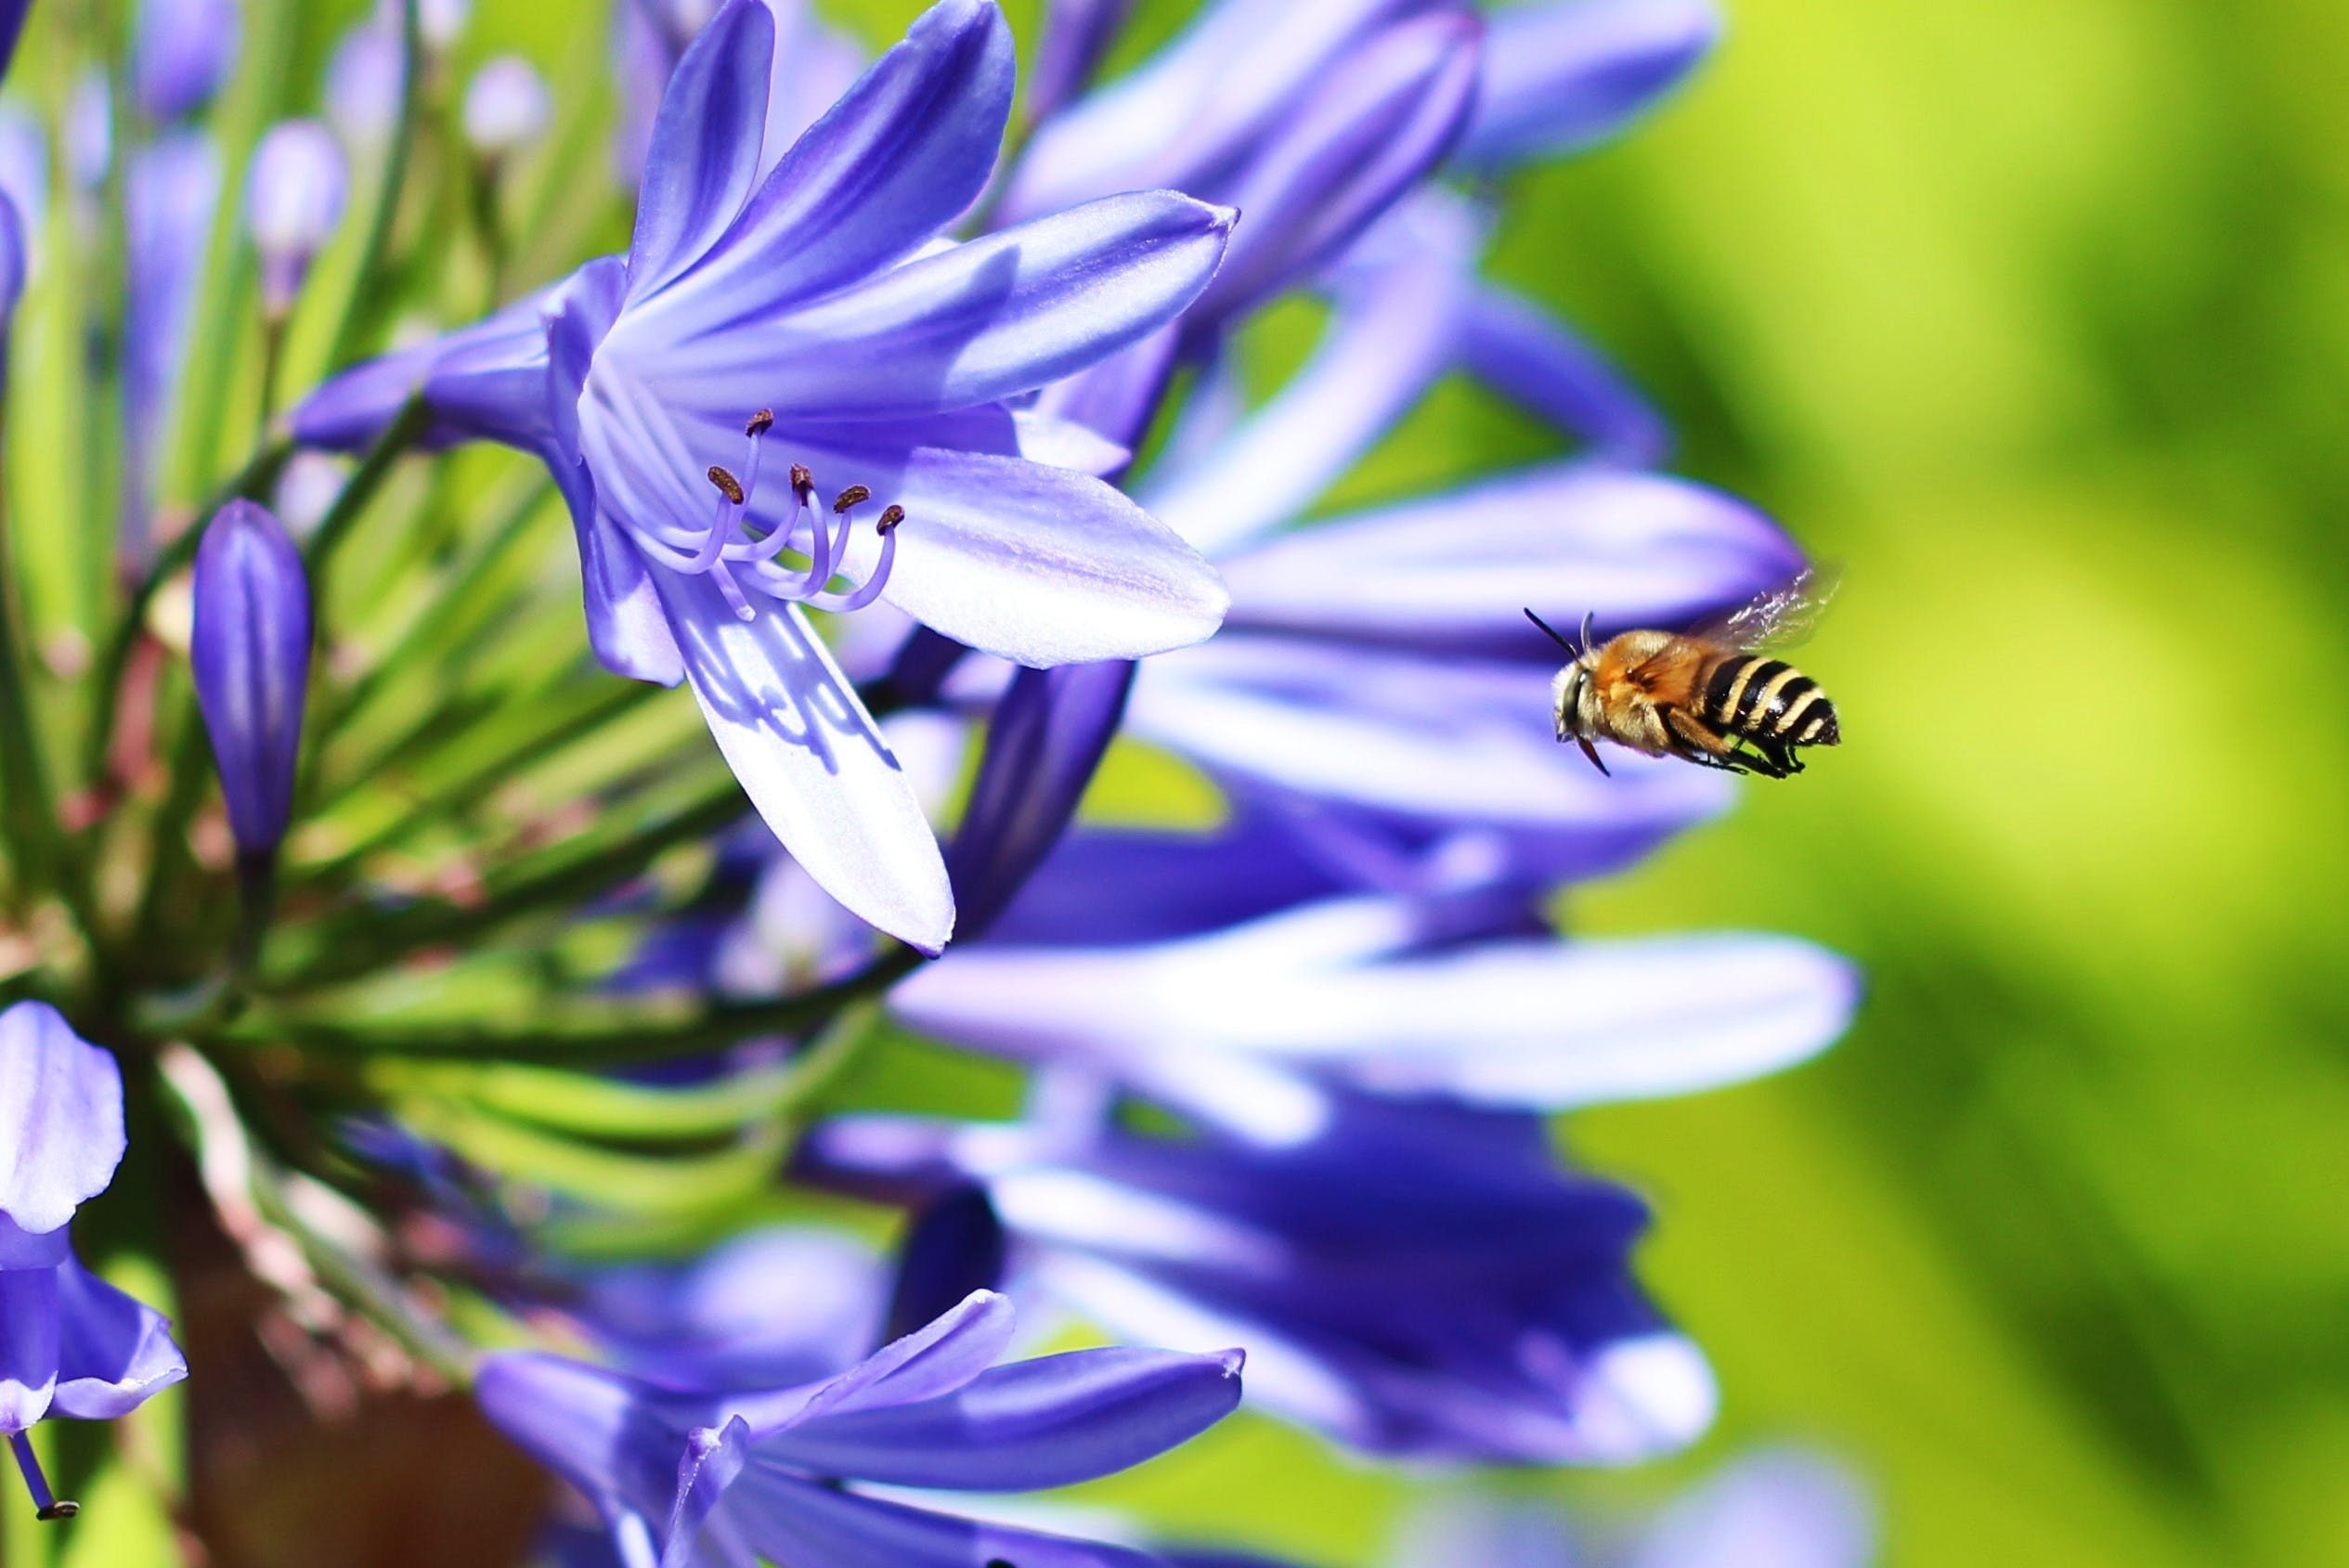 Free stock photo of nature, flower, bee, insect